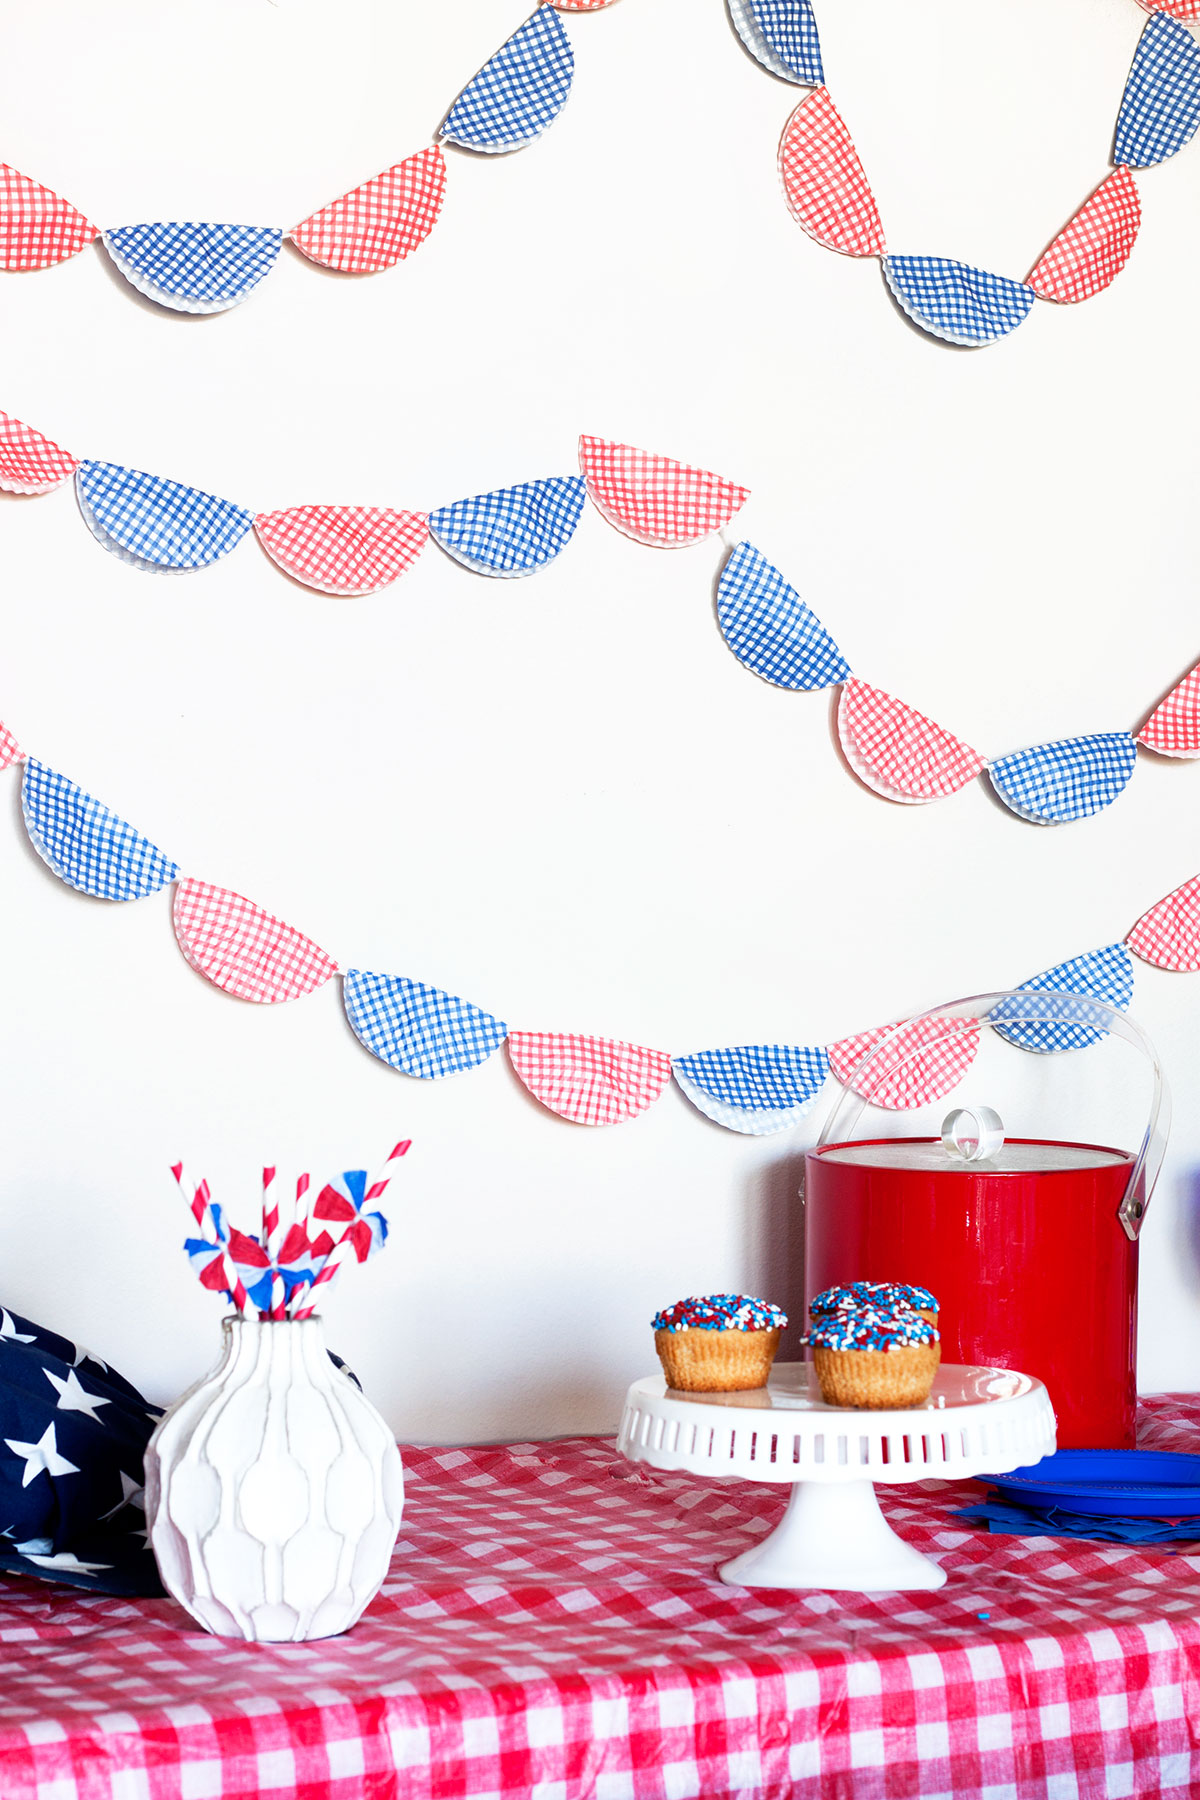 Patriotic Bunting from Baking Cups- Paint the Gown Red